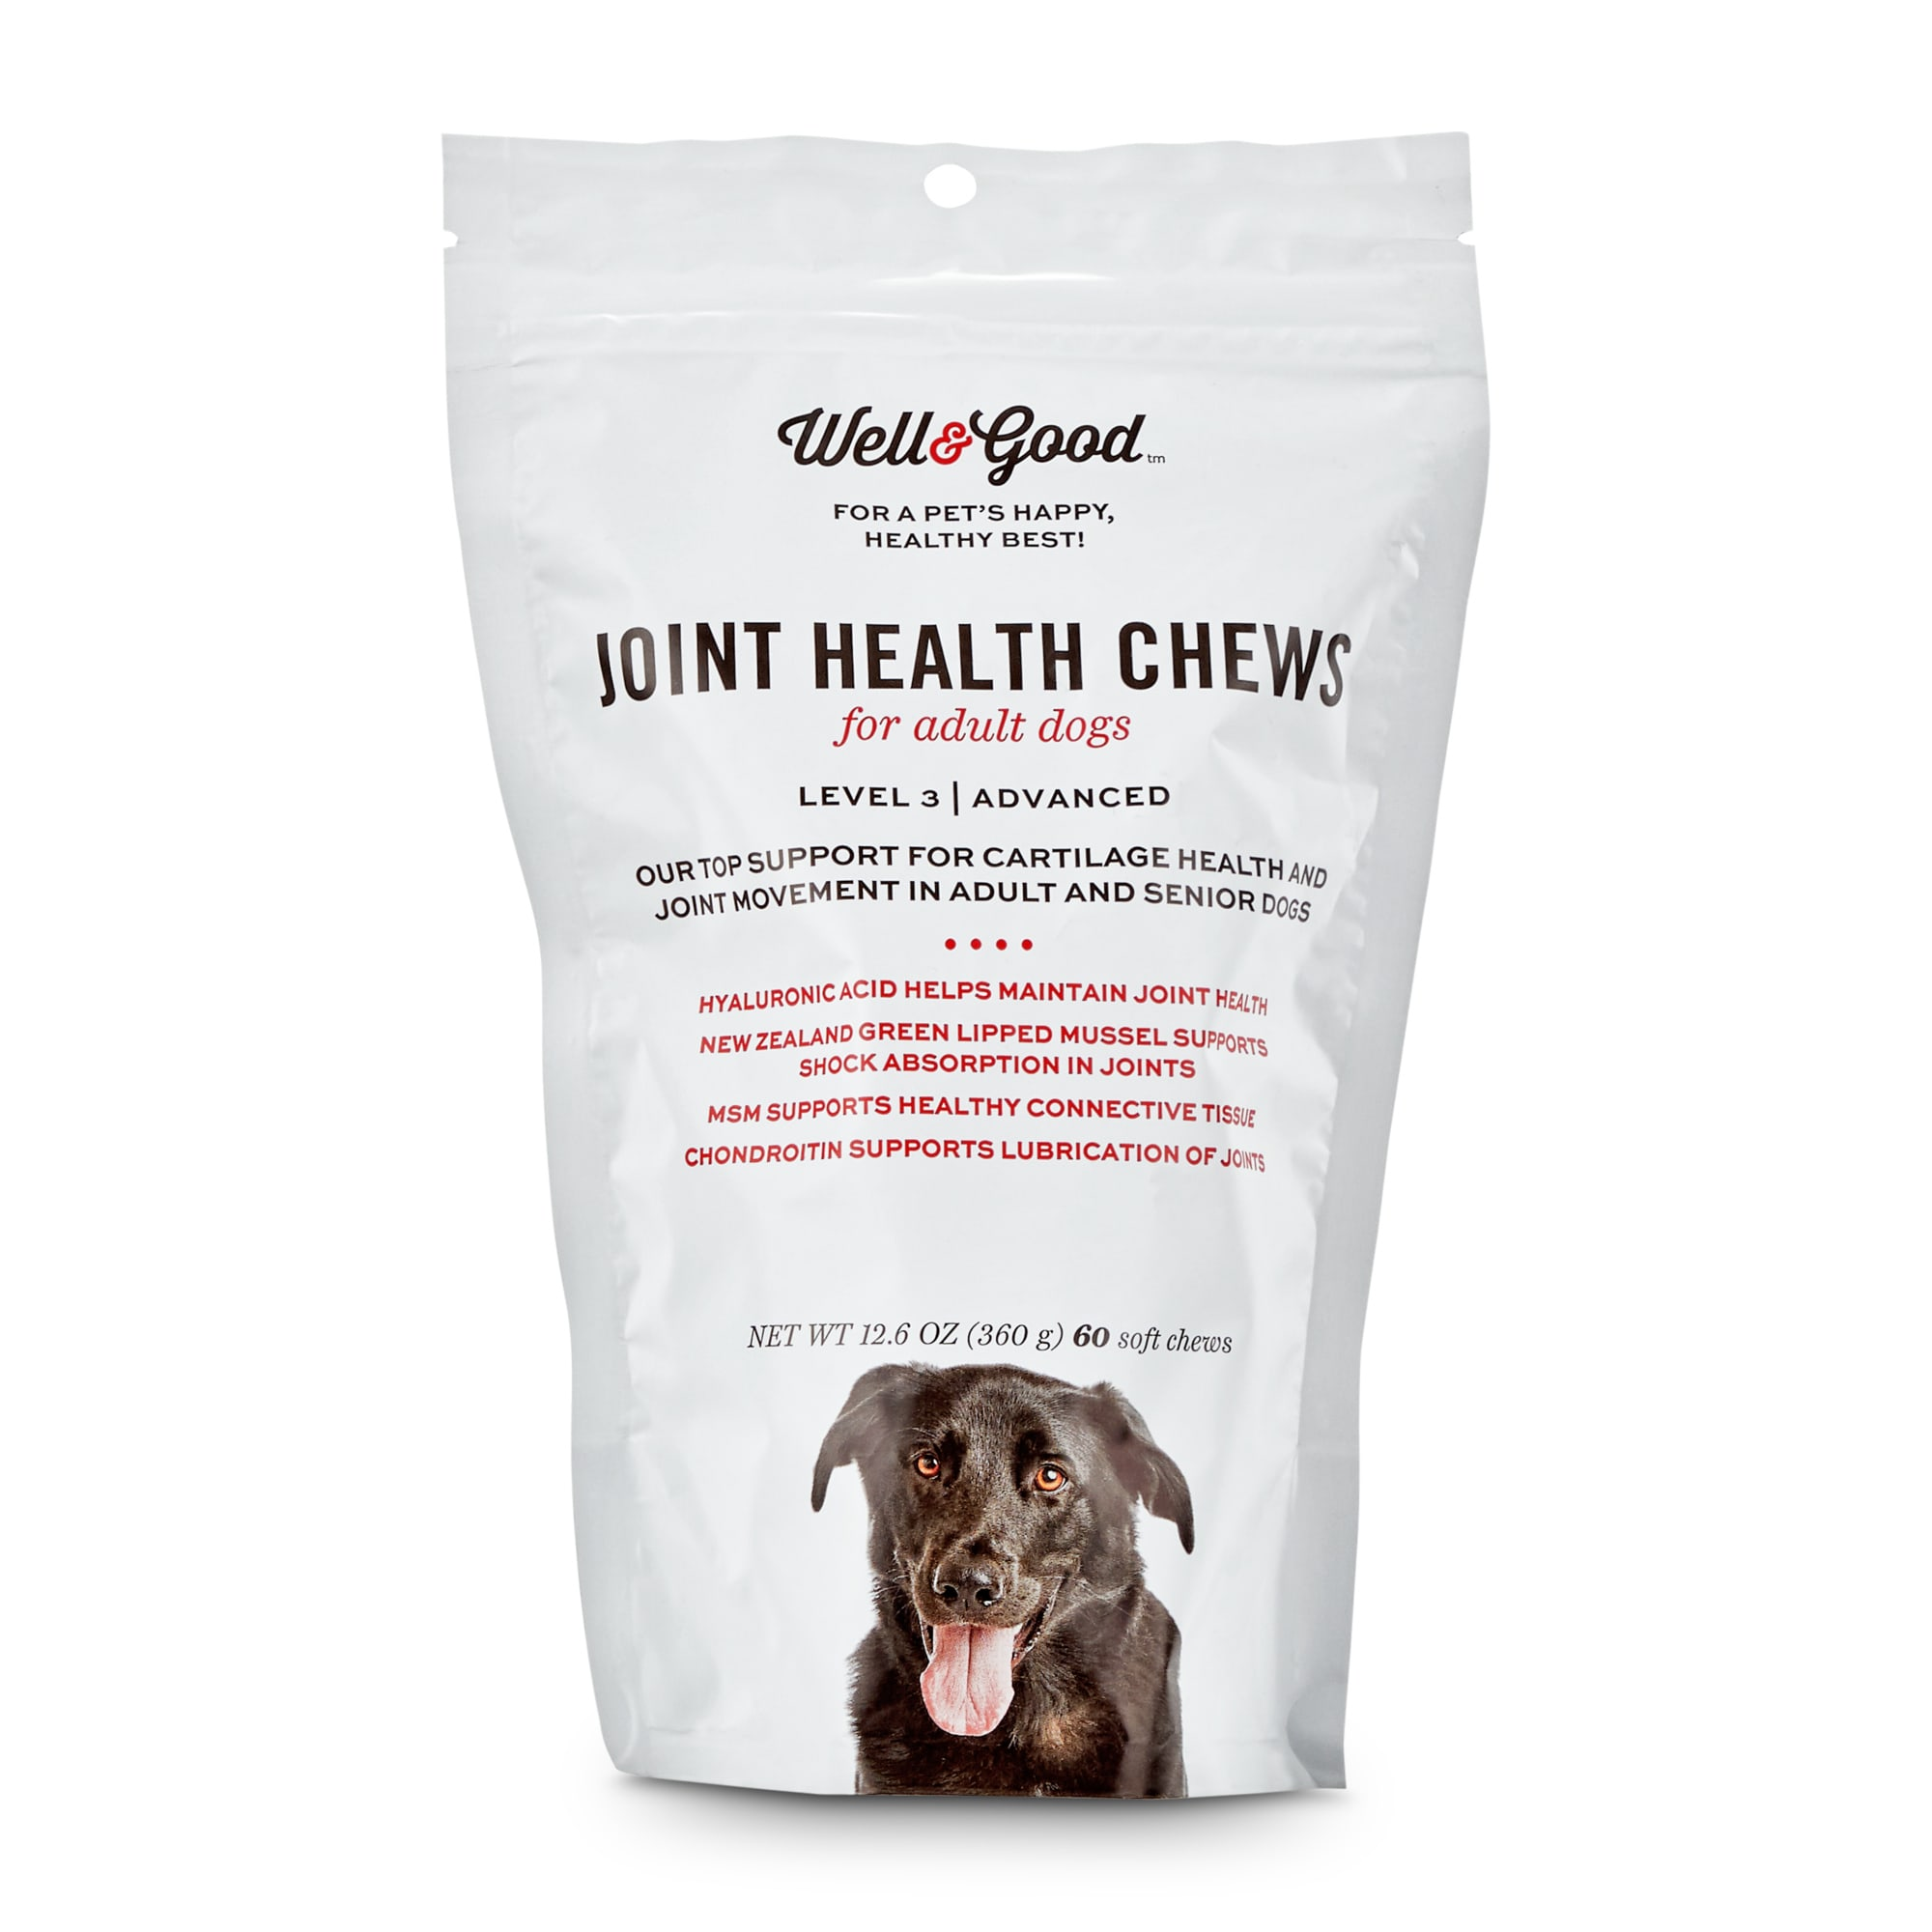 Well & Good Adult Level 3 Dog Joint Health Chewable Tablets, 12.6 oz., Count of 60, 12.6 LBS